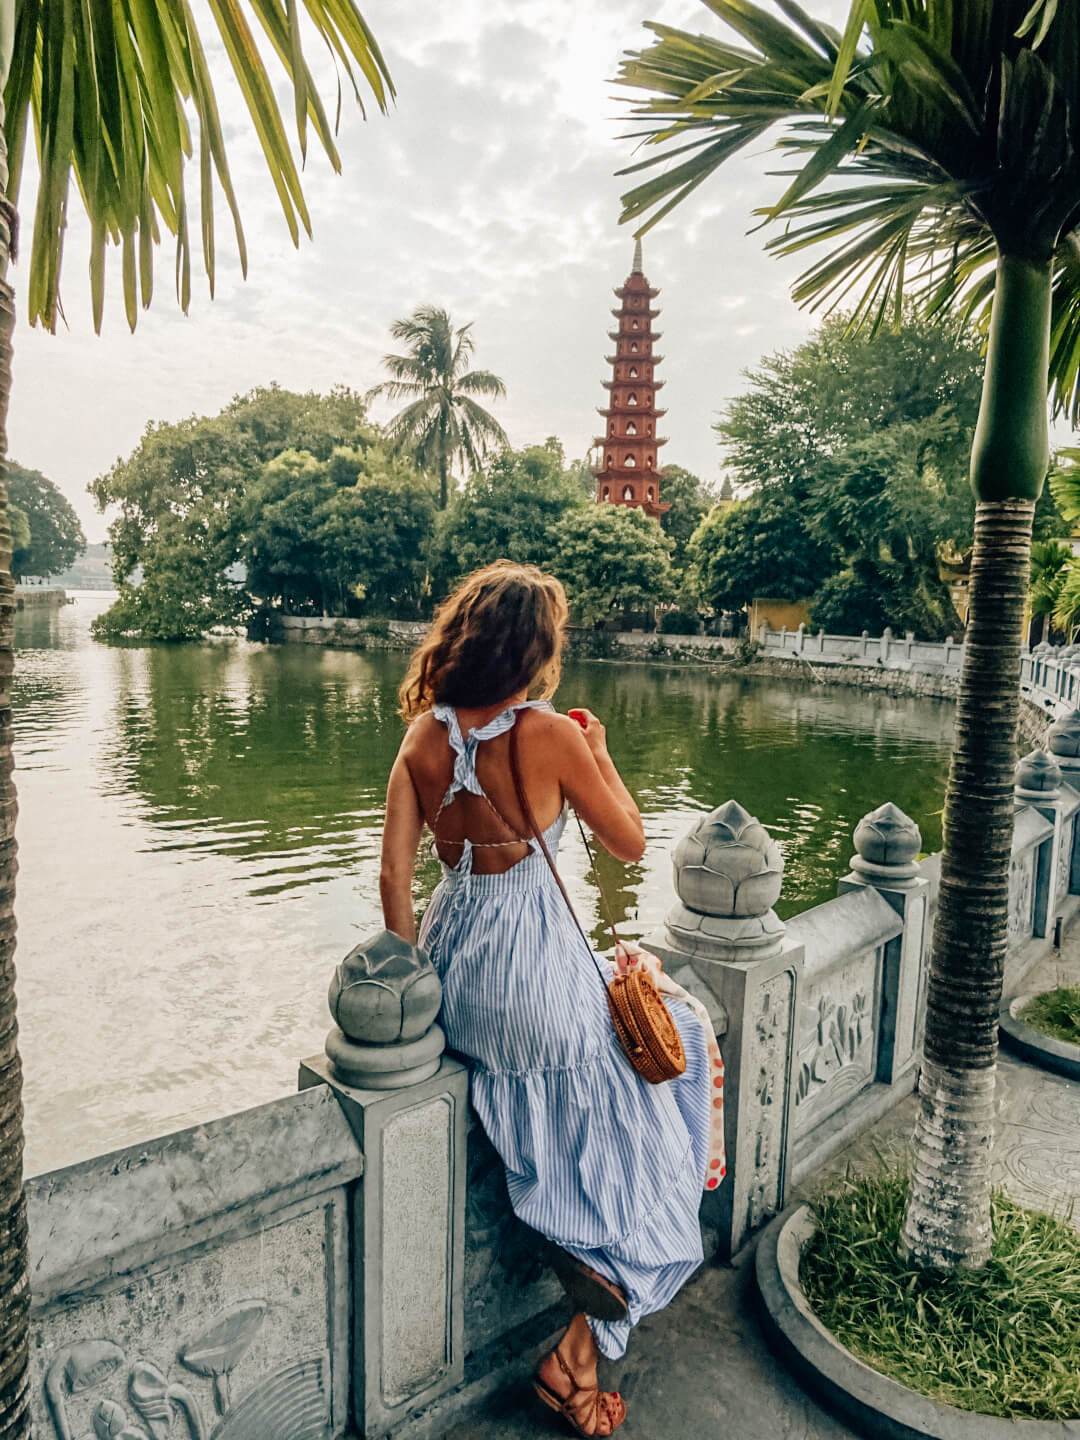 Inside the river – Hanoi